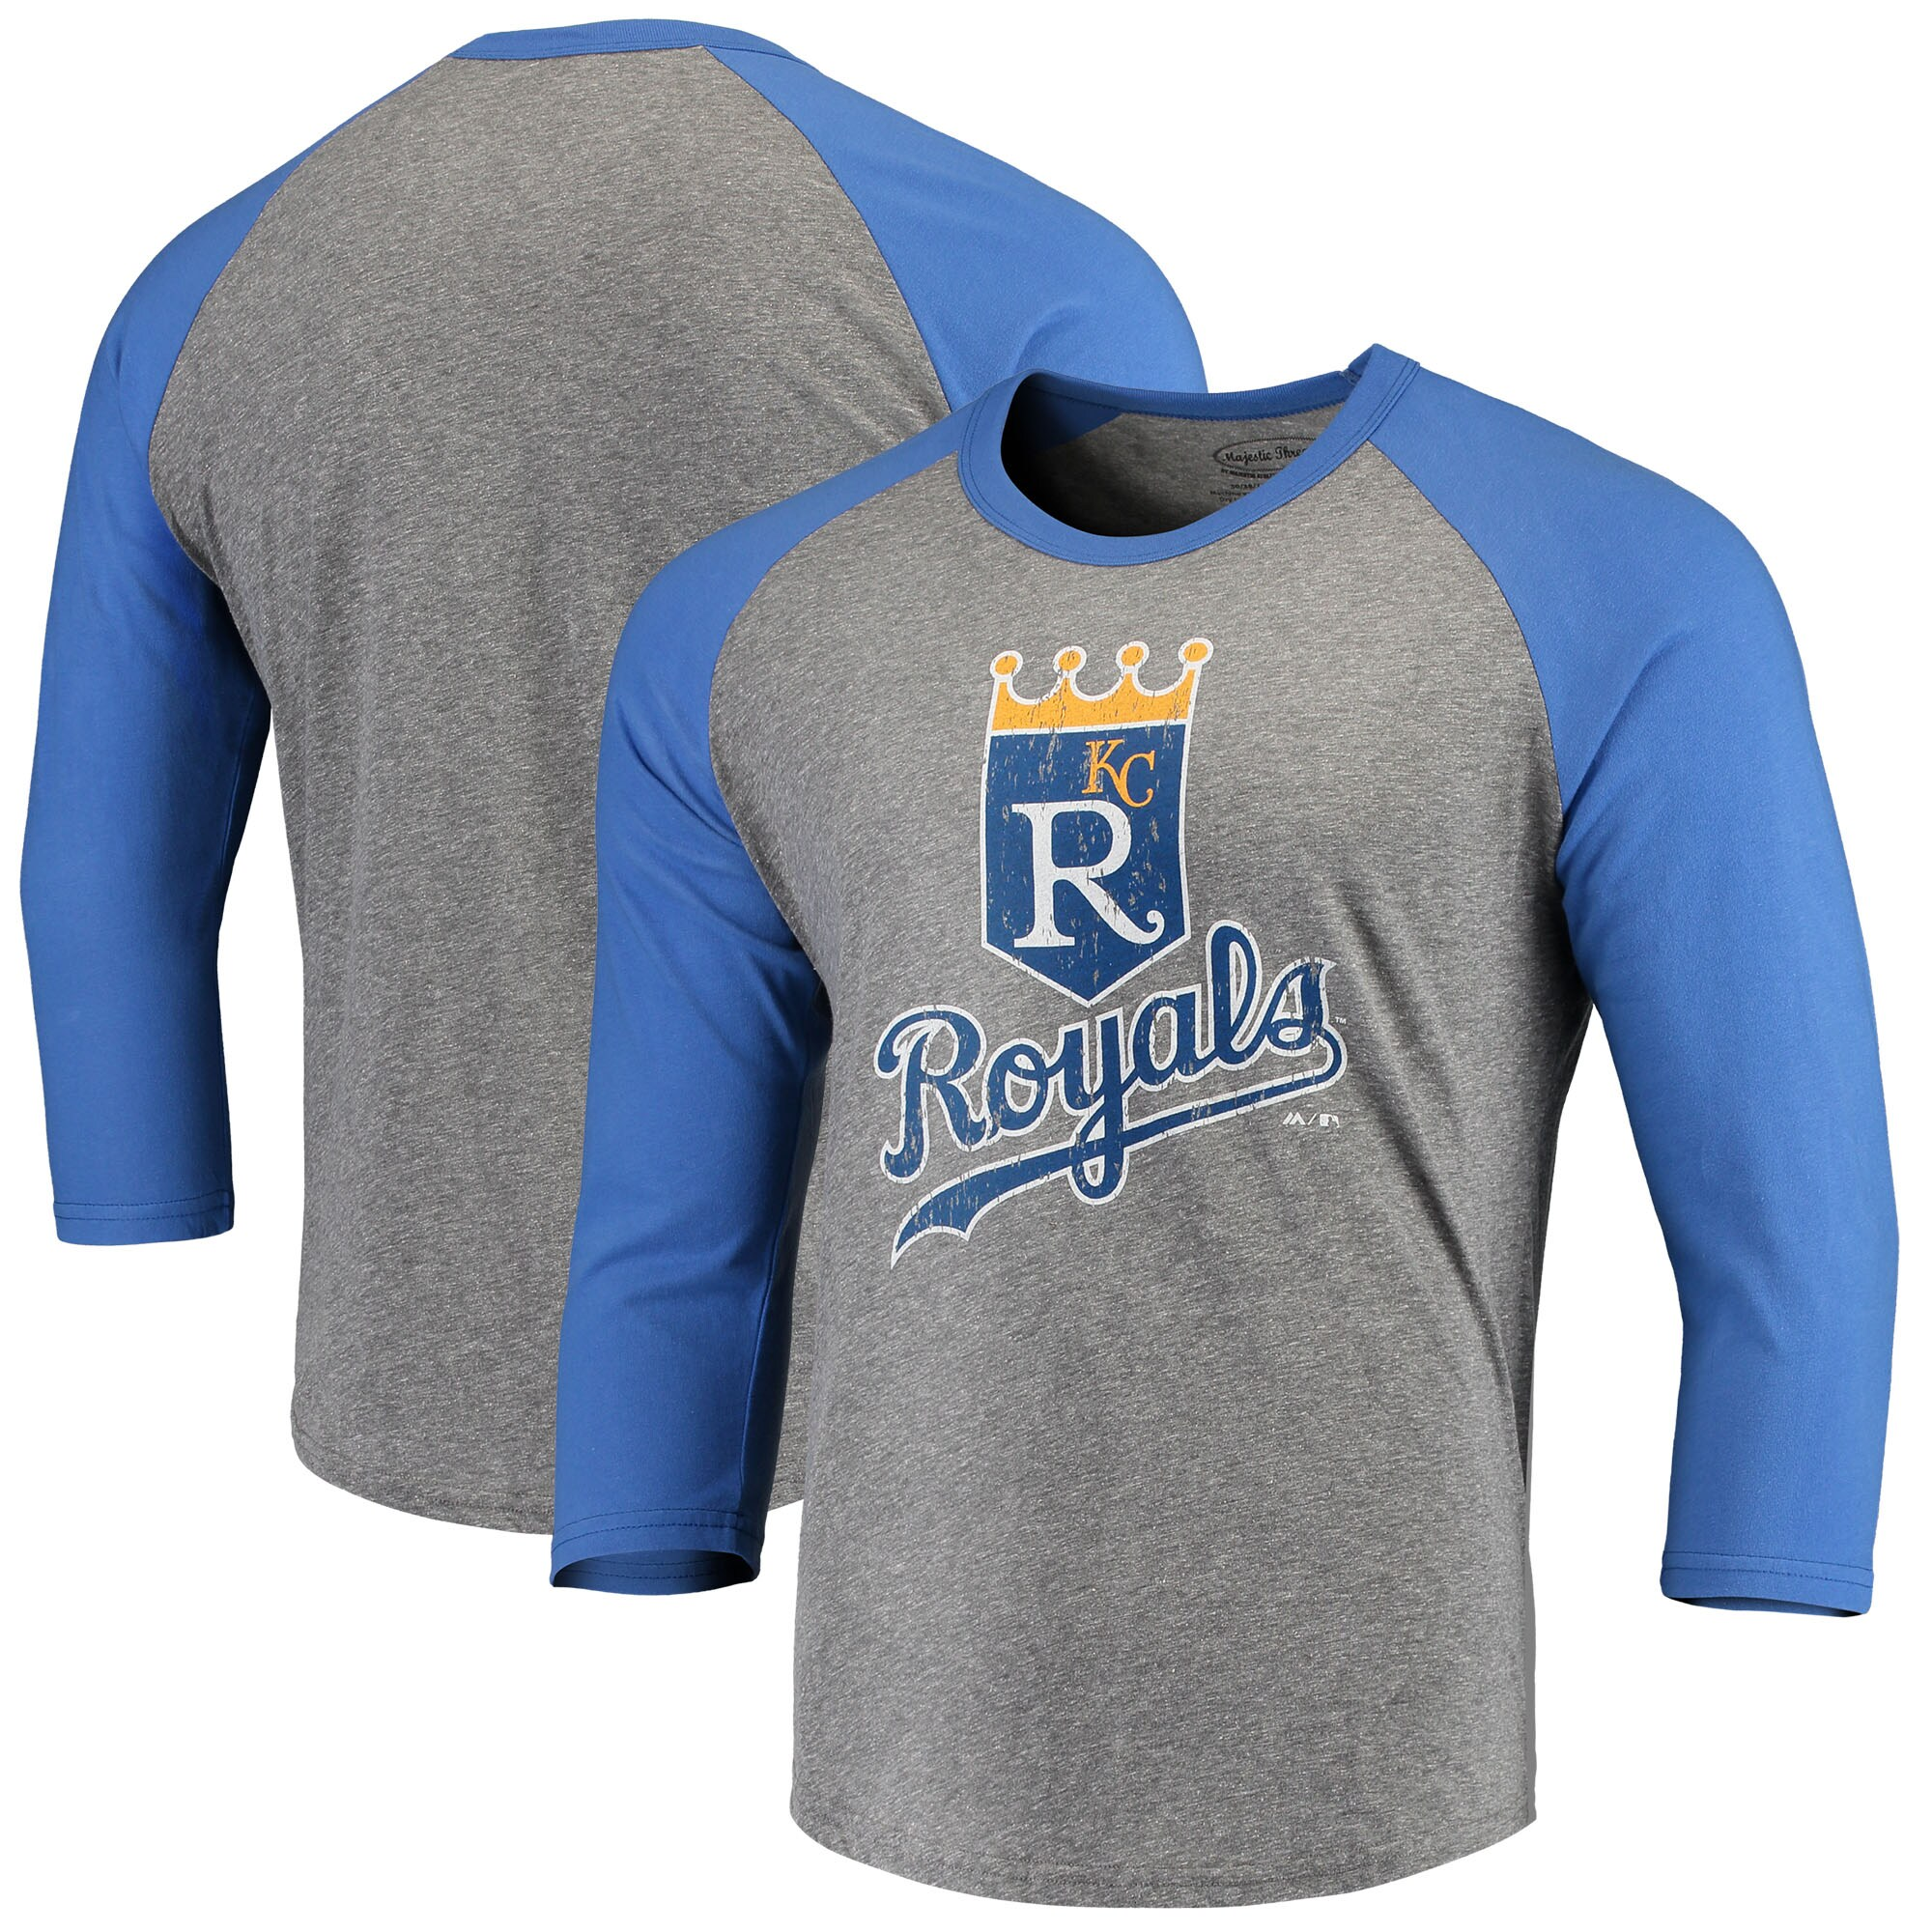 Kansas City Royals Majestic Threads Cooperstown Collection 3/4-Sleeve Raglan Tri-Blend T-Shirt - Heathered Gray/Royal